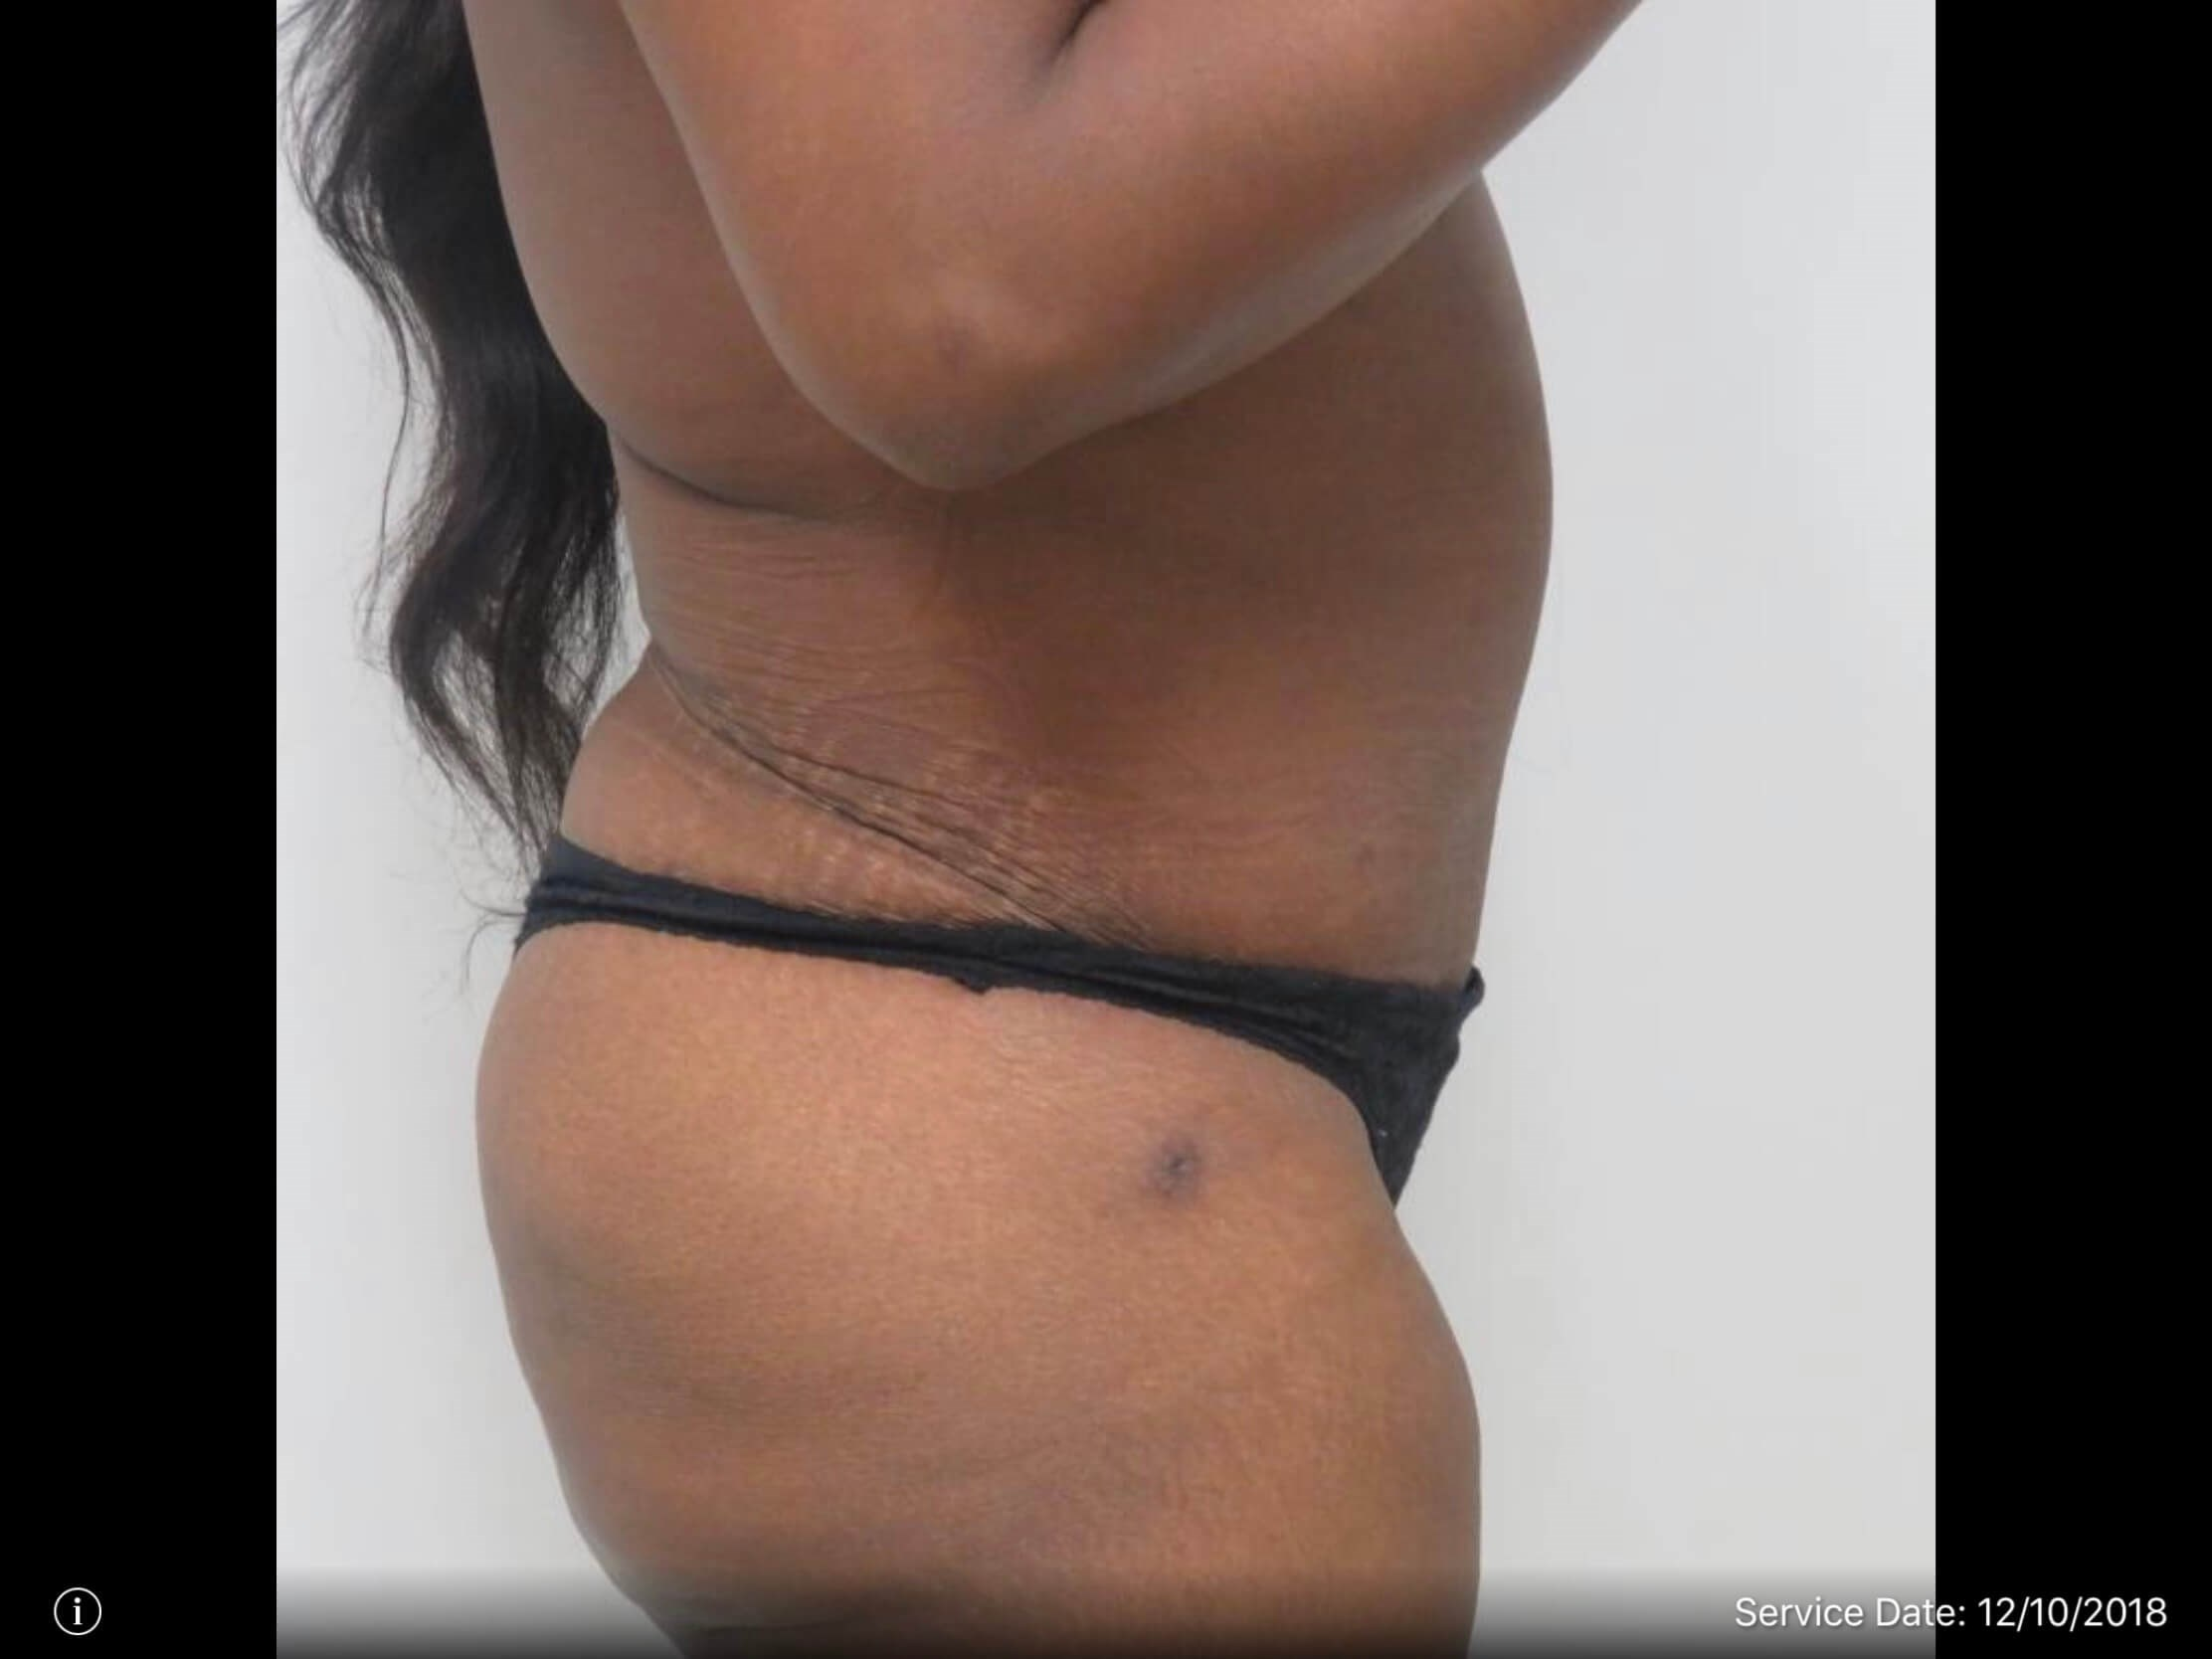 Side View of Tummy Tuck After Tummy Tuck Procedure